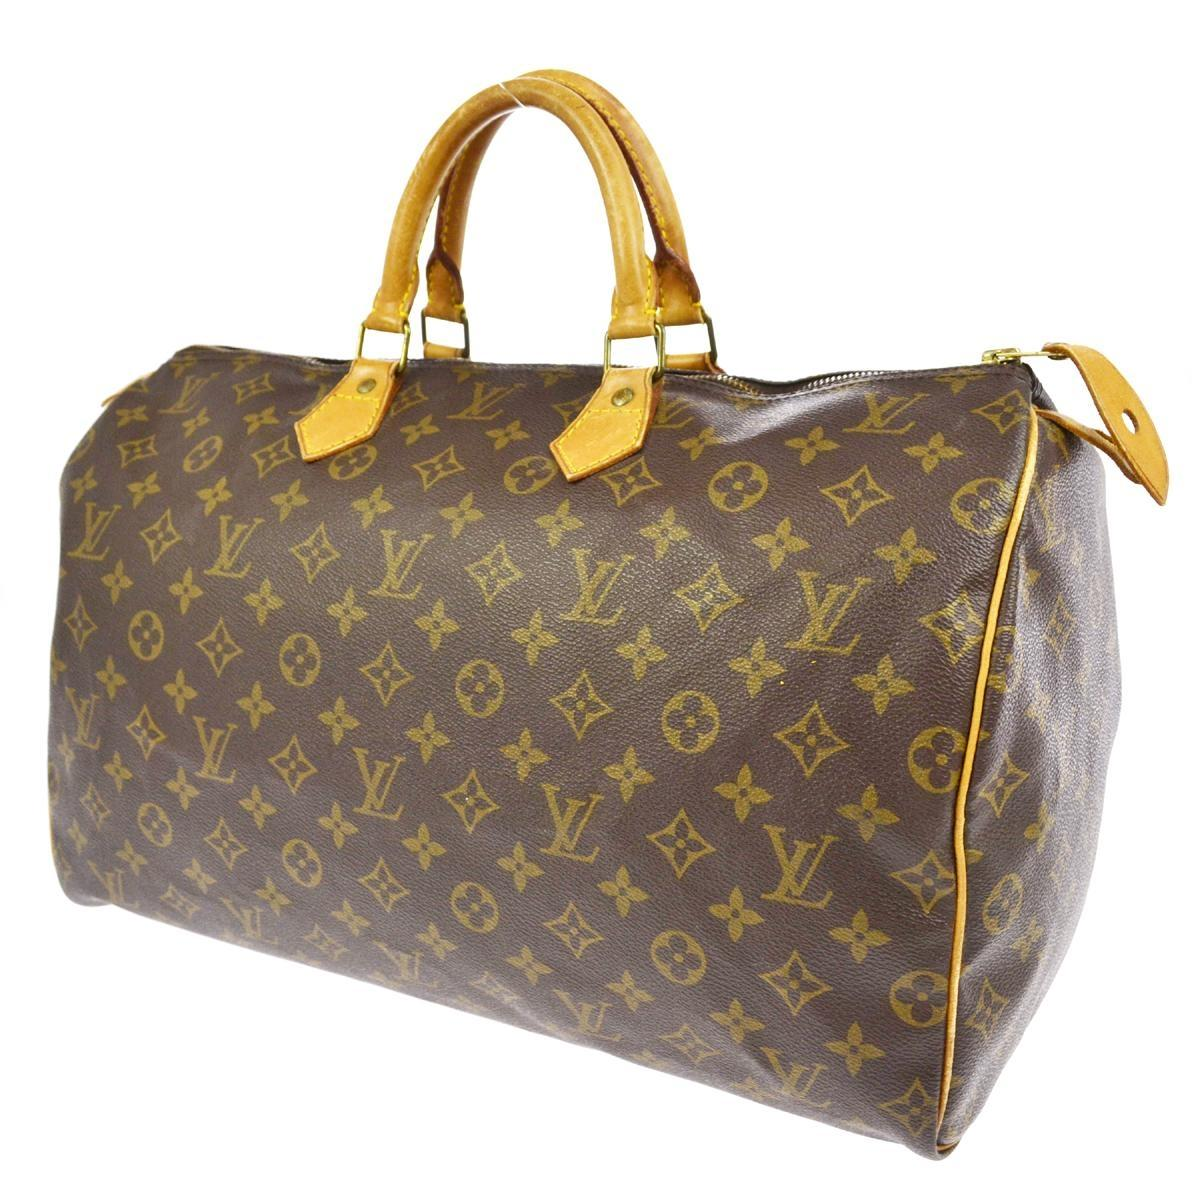 Lv Speedy 40 Monogram